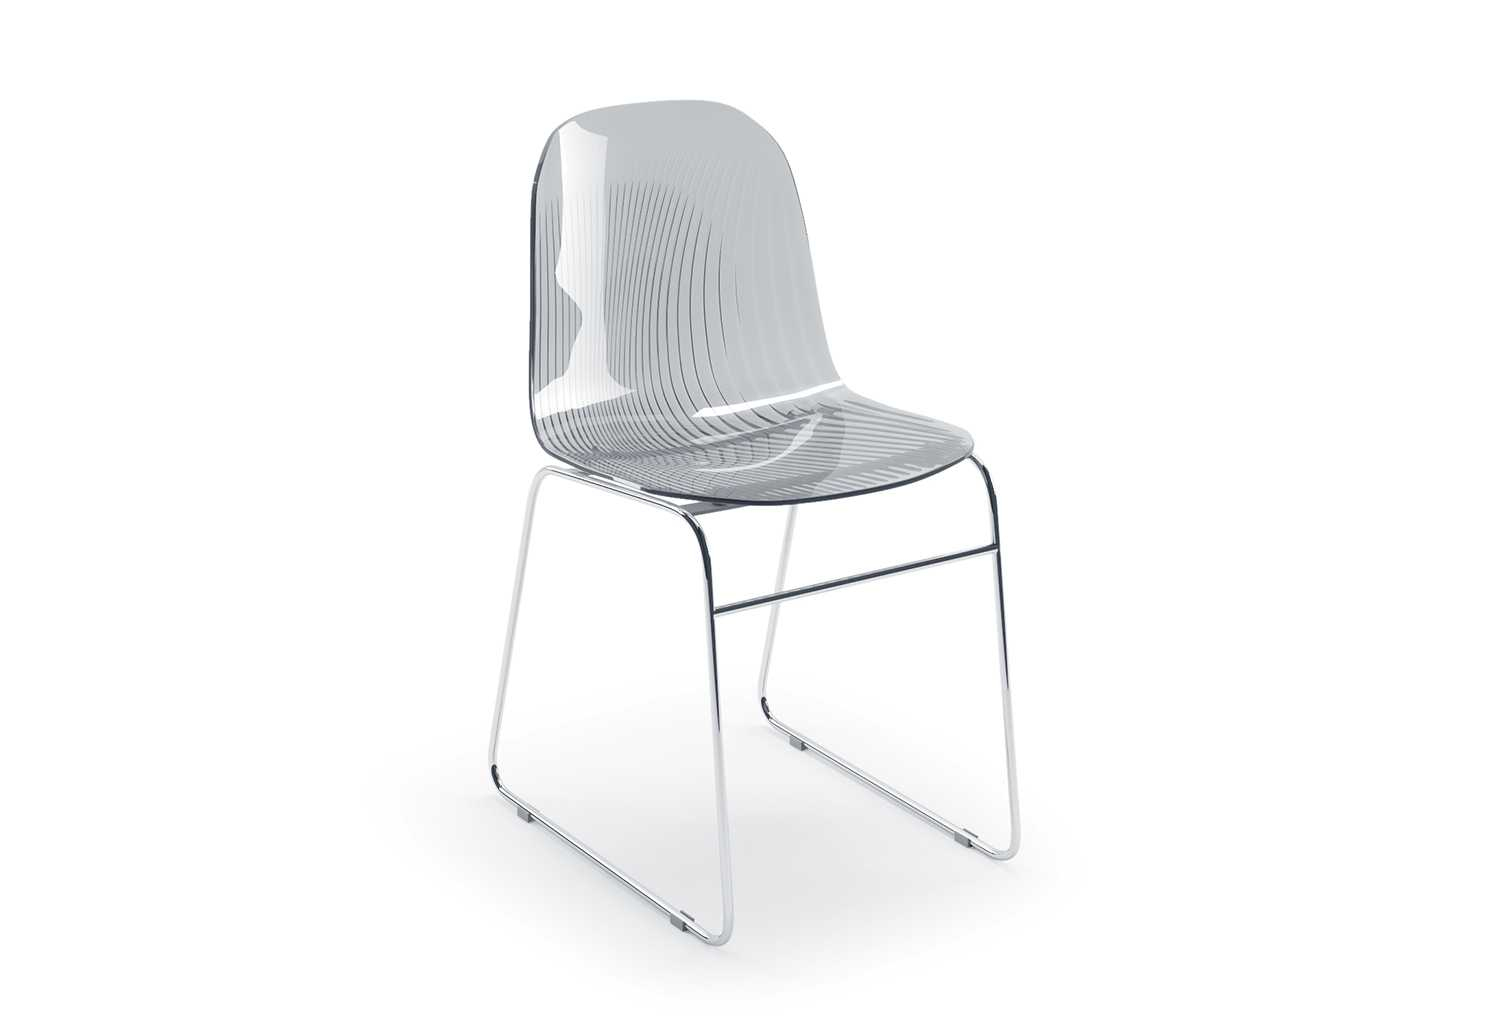 Clear Plastic Chair With Chrome Legs Playa Clever